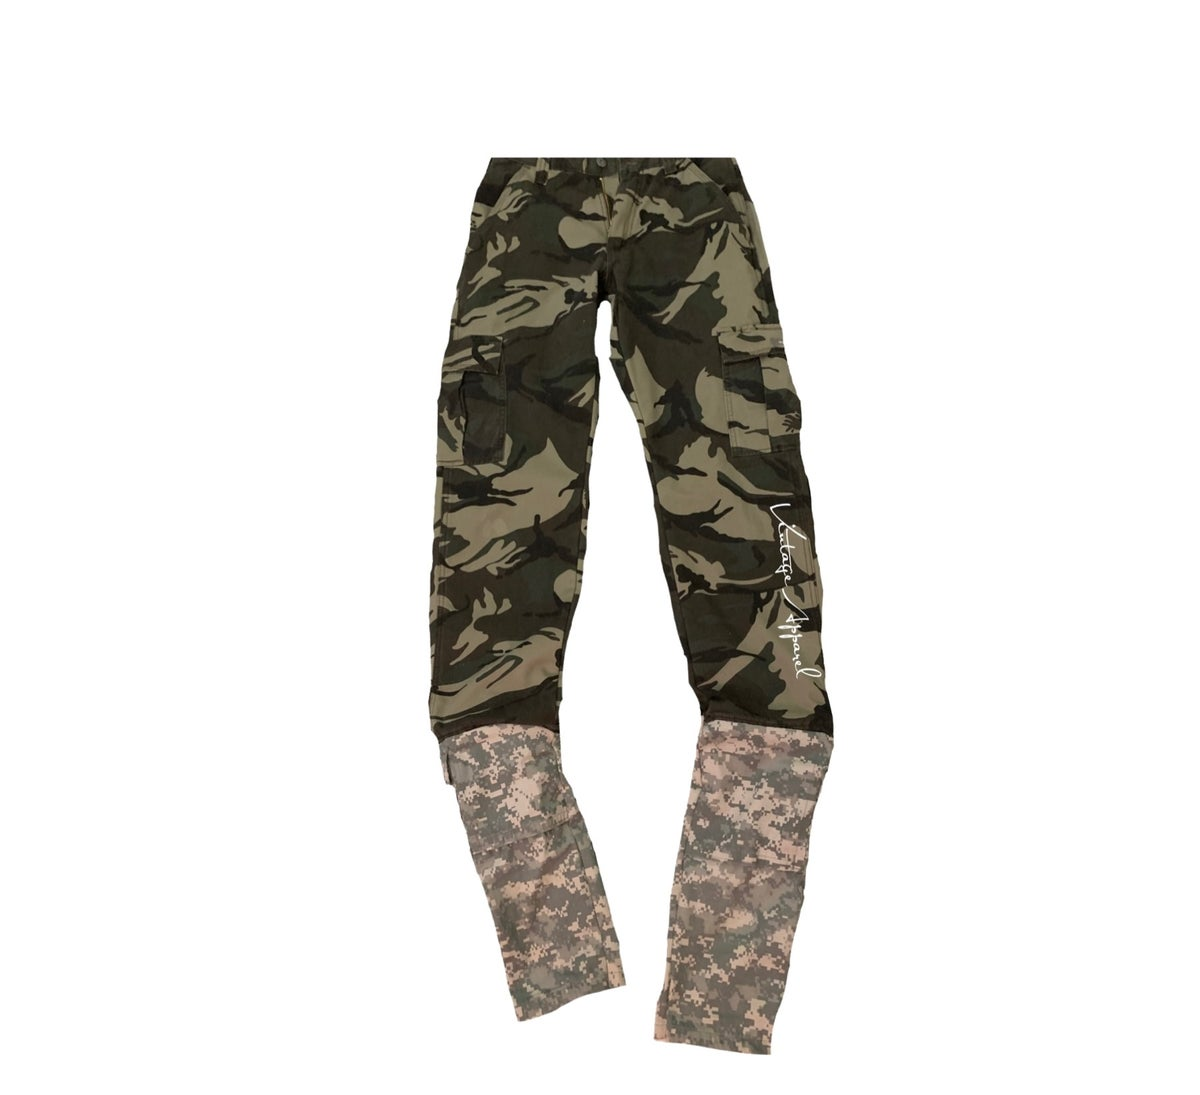 1 of 1 Stacked Camo Pants